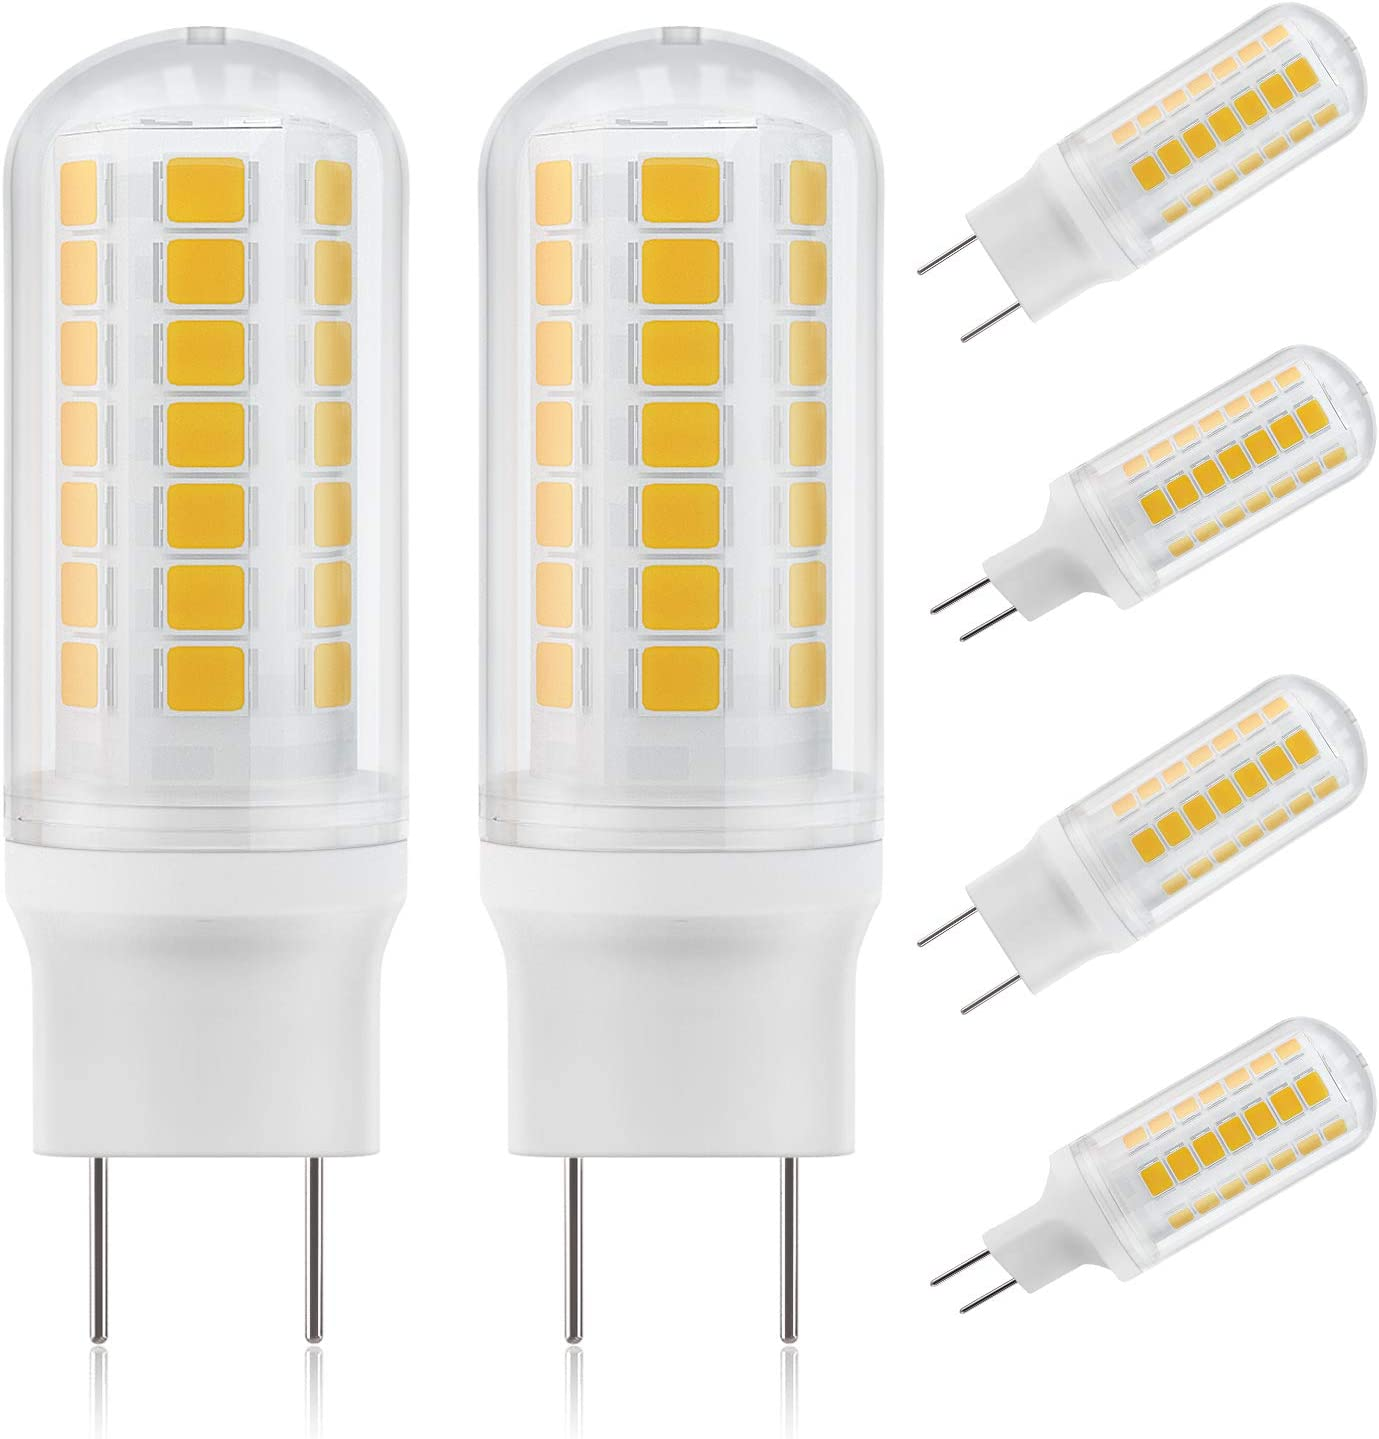 DiCUNO G8 Dimmable LED Bulb Flat Base 4W (40W Halogen Equivalent), Warm White 3000K, 450LM, Bi Pin Base Bulb Replacement for Under Counter, Under-Cabinet Light and Puck Light, 6 Pack